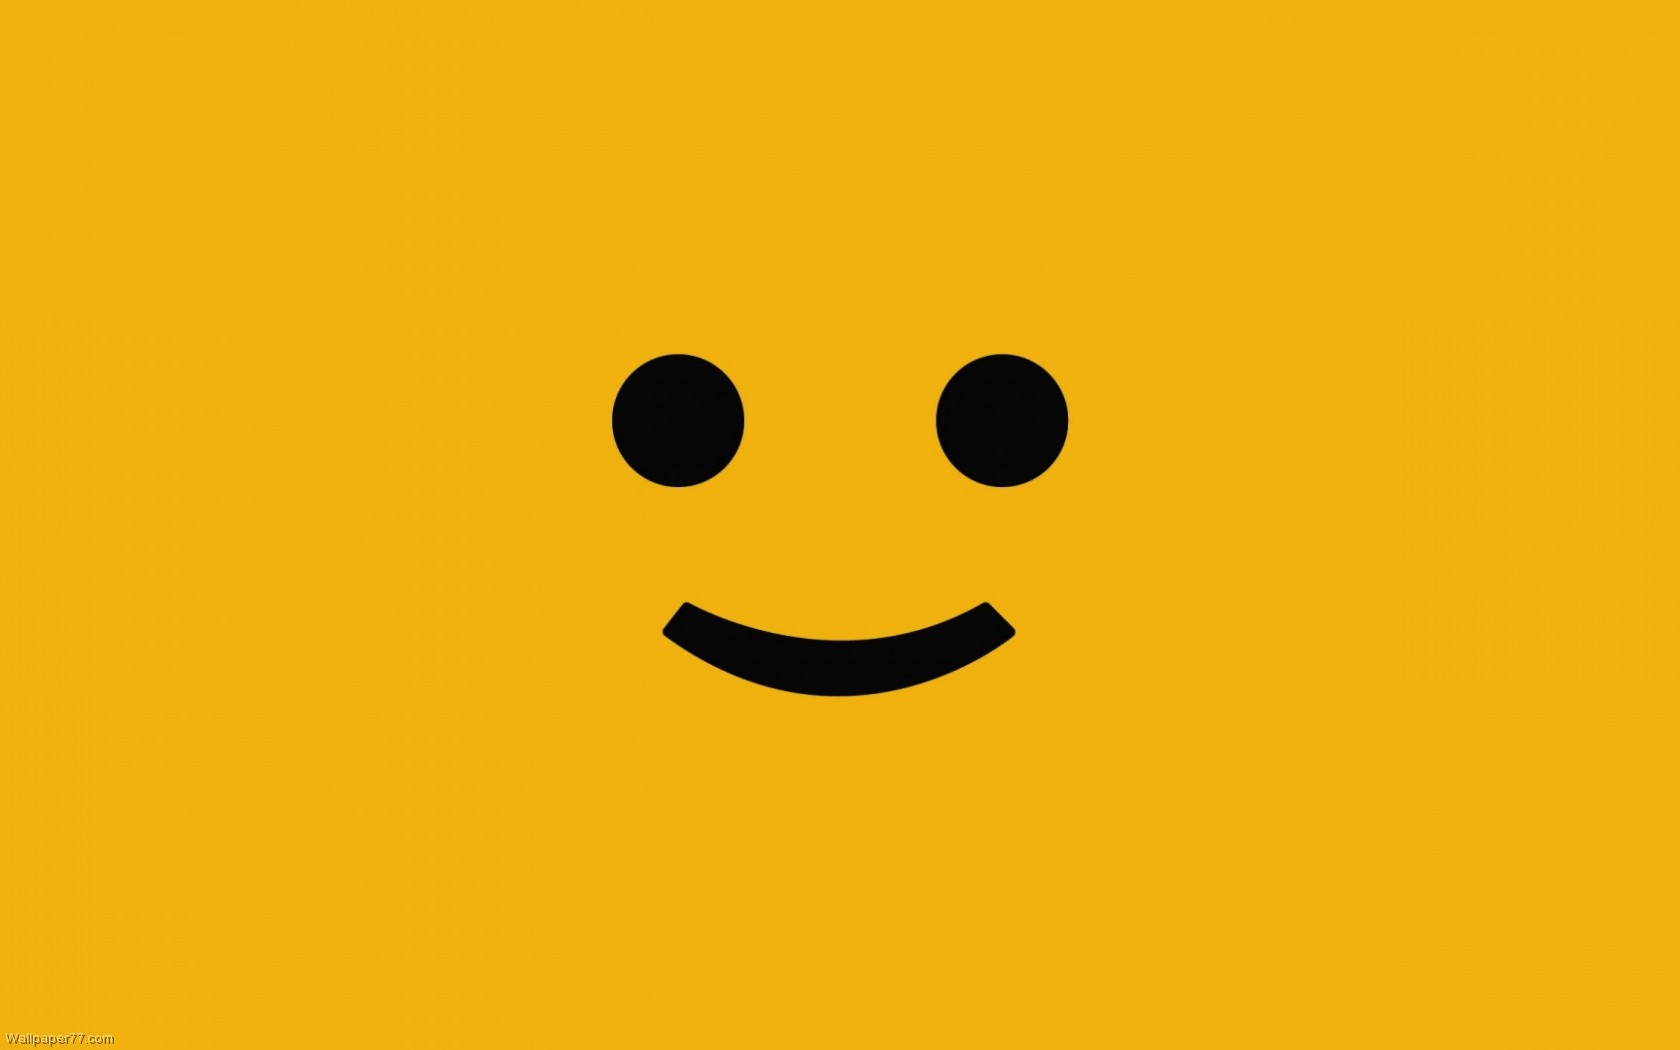 smiley face background cute fun wallpapers funny wallpapers 1920x1080 1680x1050